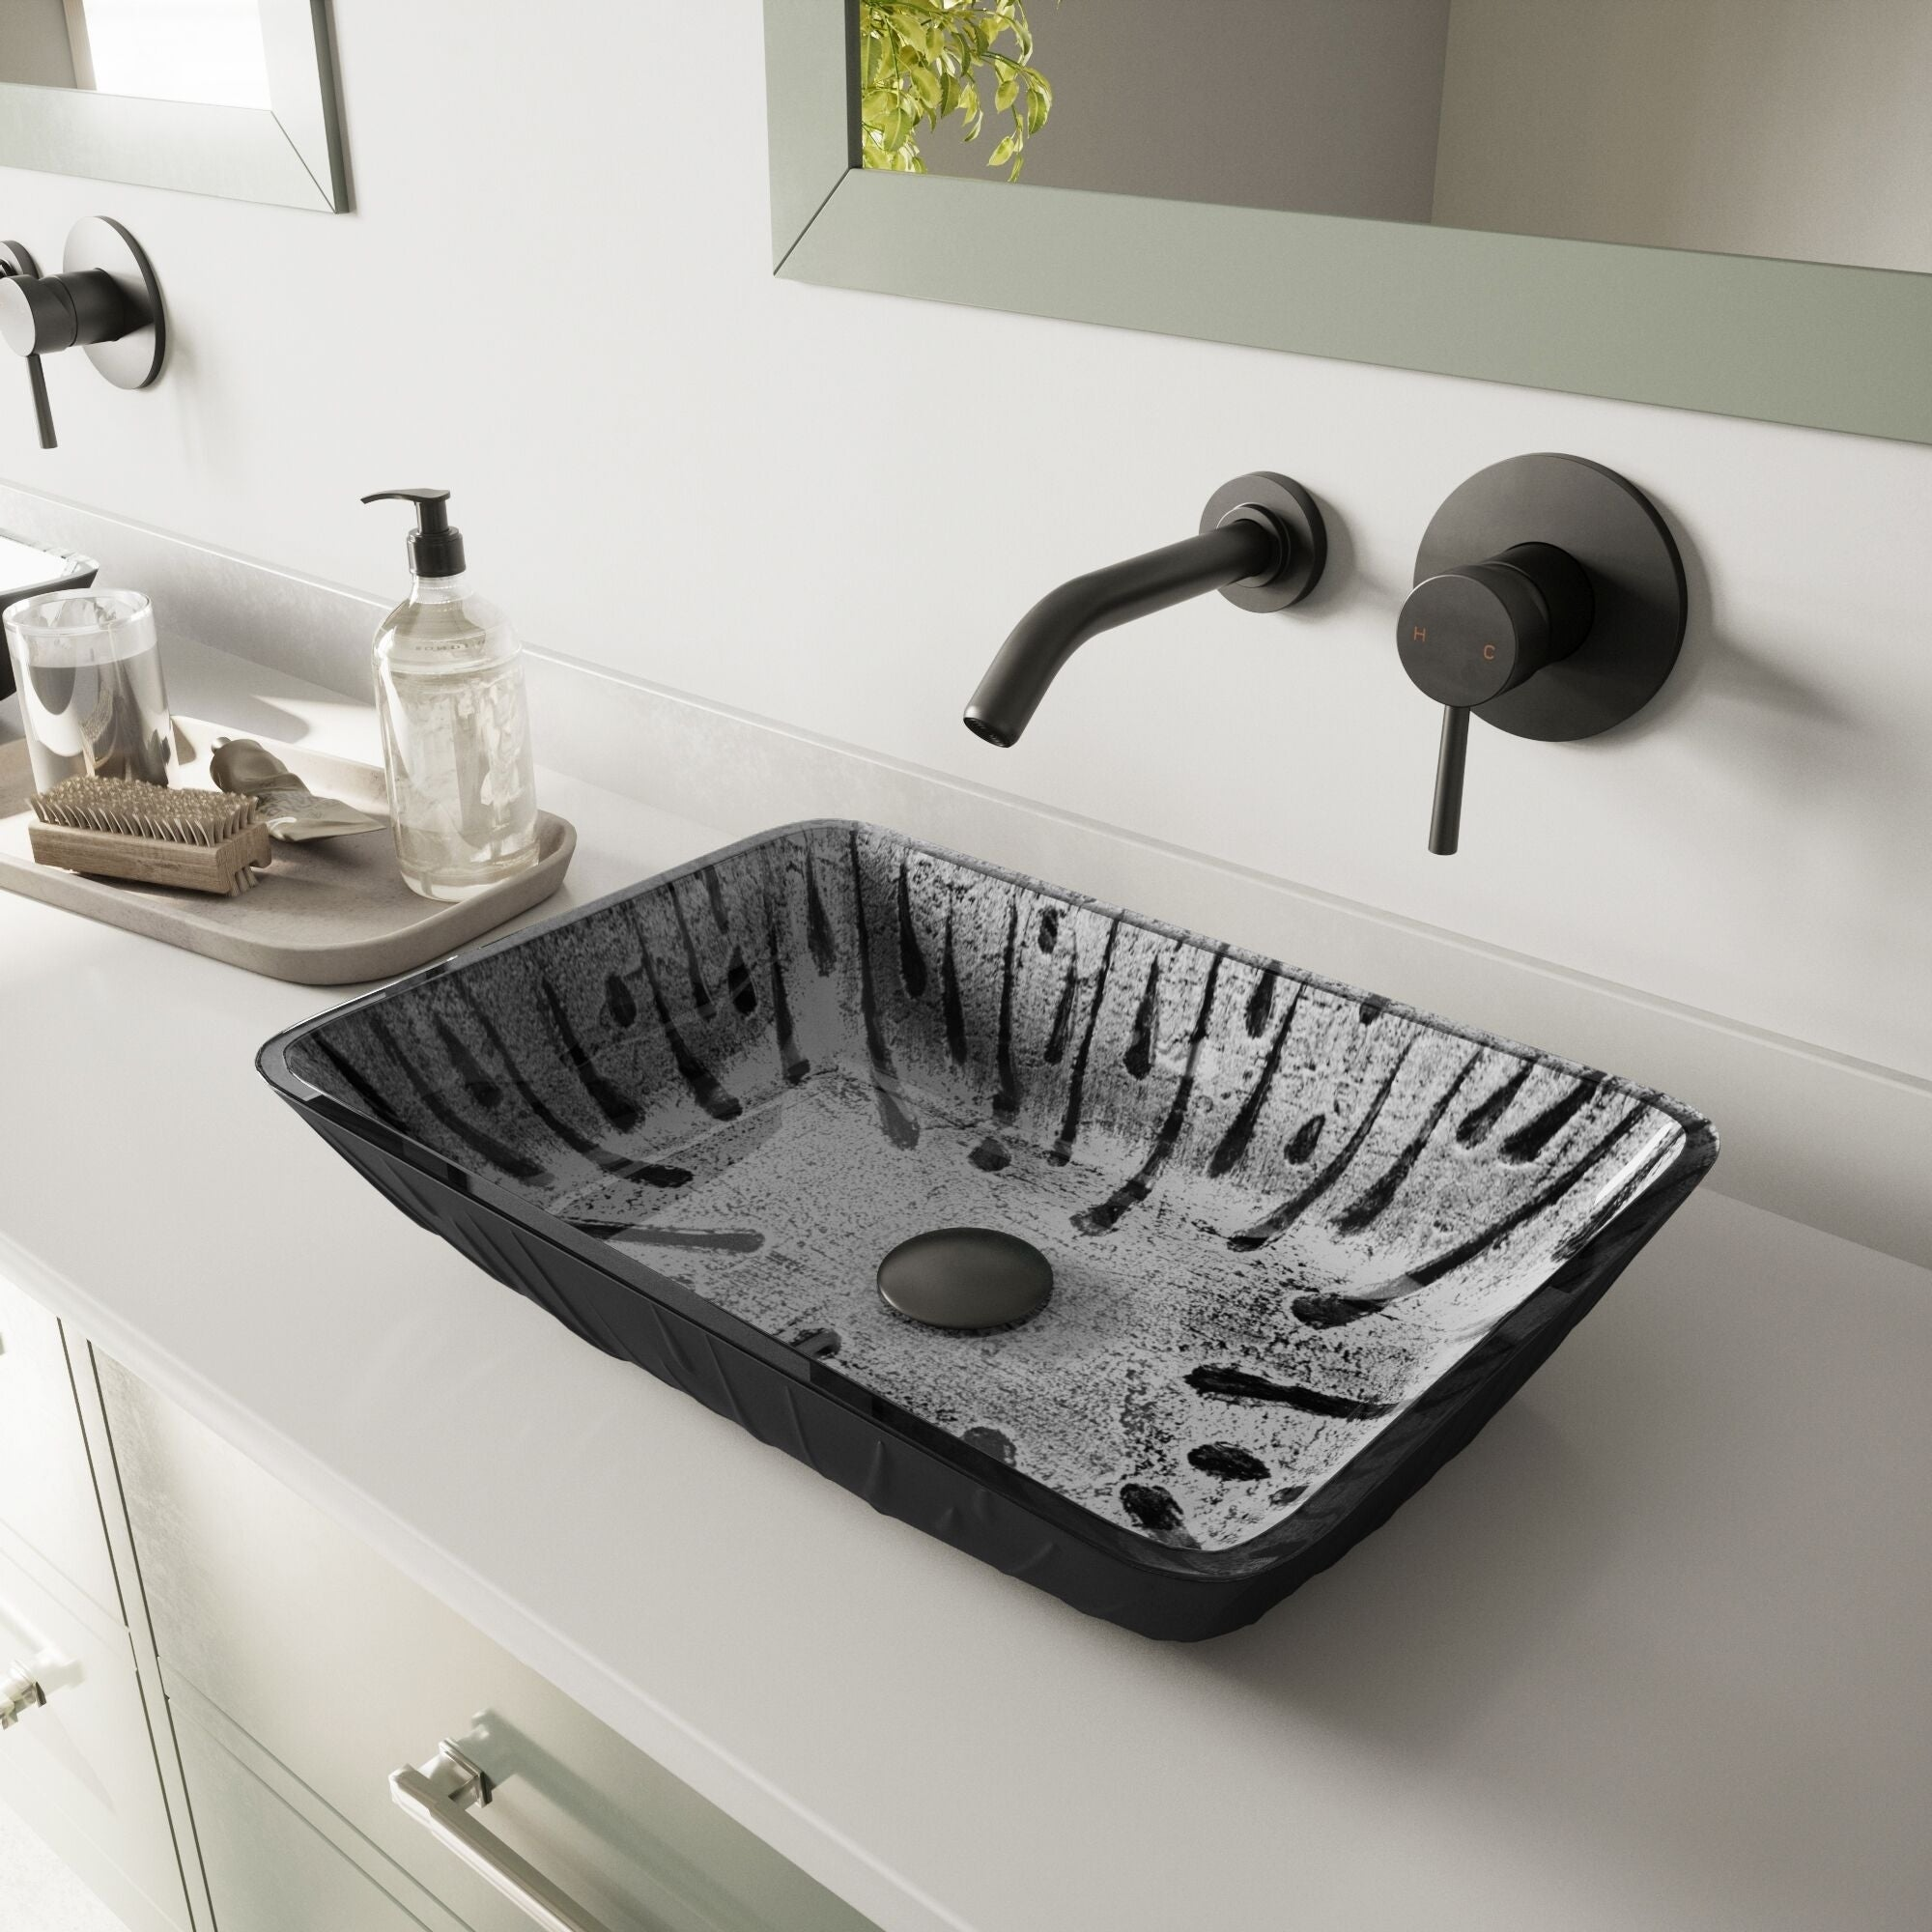 Vigo Plutonian Gl Vessel Bathroom Sink With Olus Wall Mount Faucet In A Matte Black Finish Pop Up Drain Included